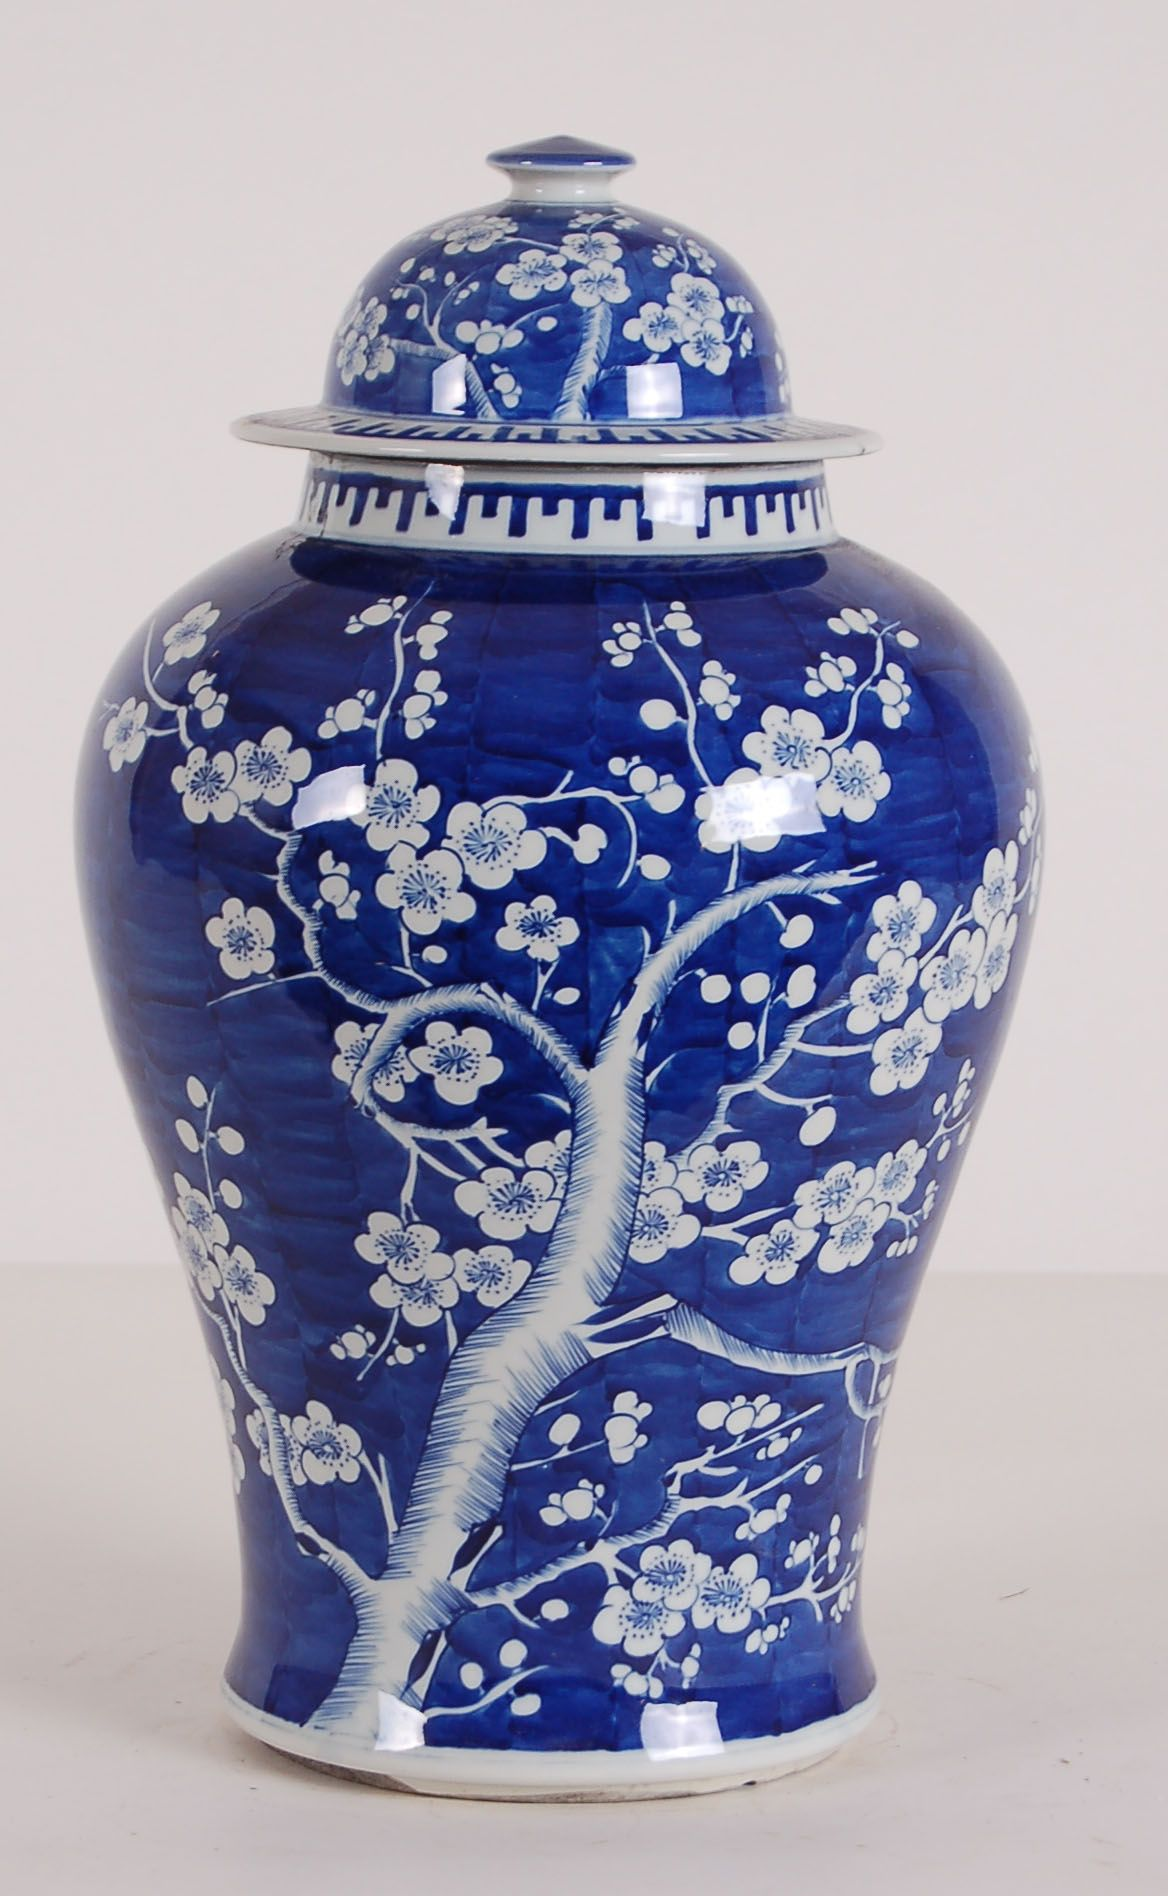 B/W Hawthorn Home Pattern Jar: Avala And Summerour Lamps